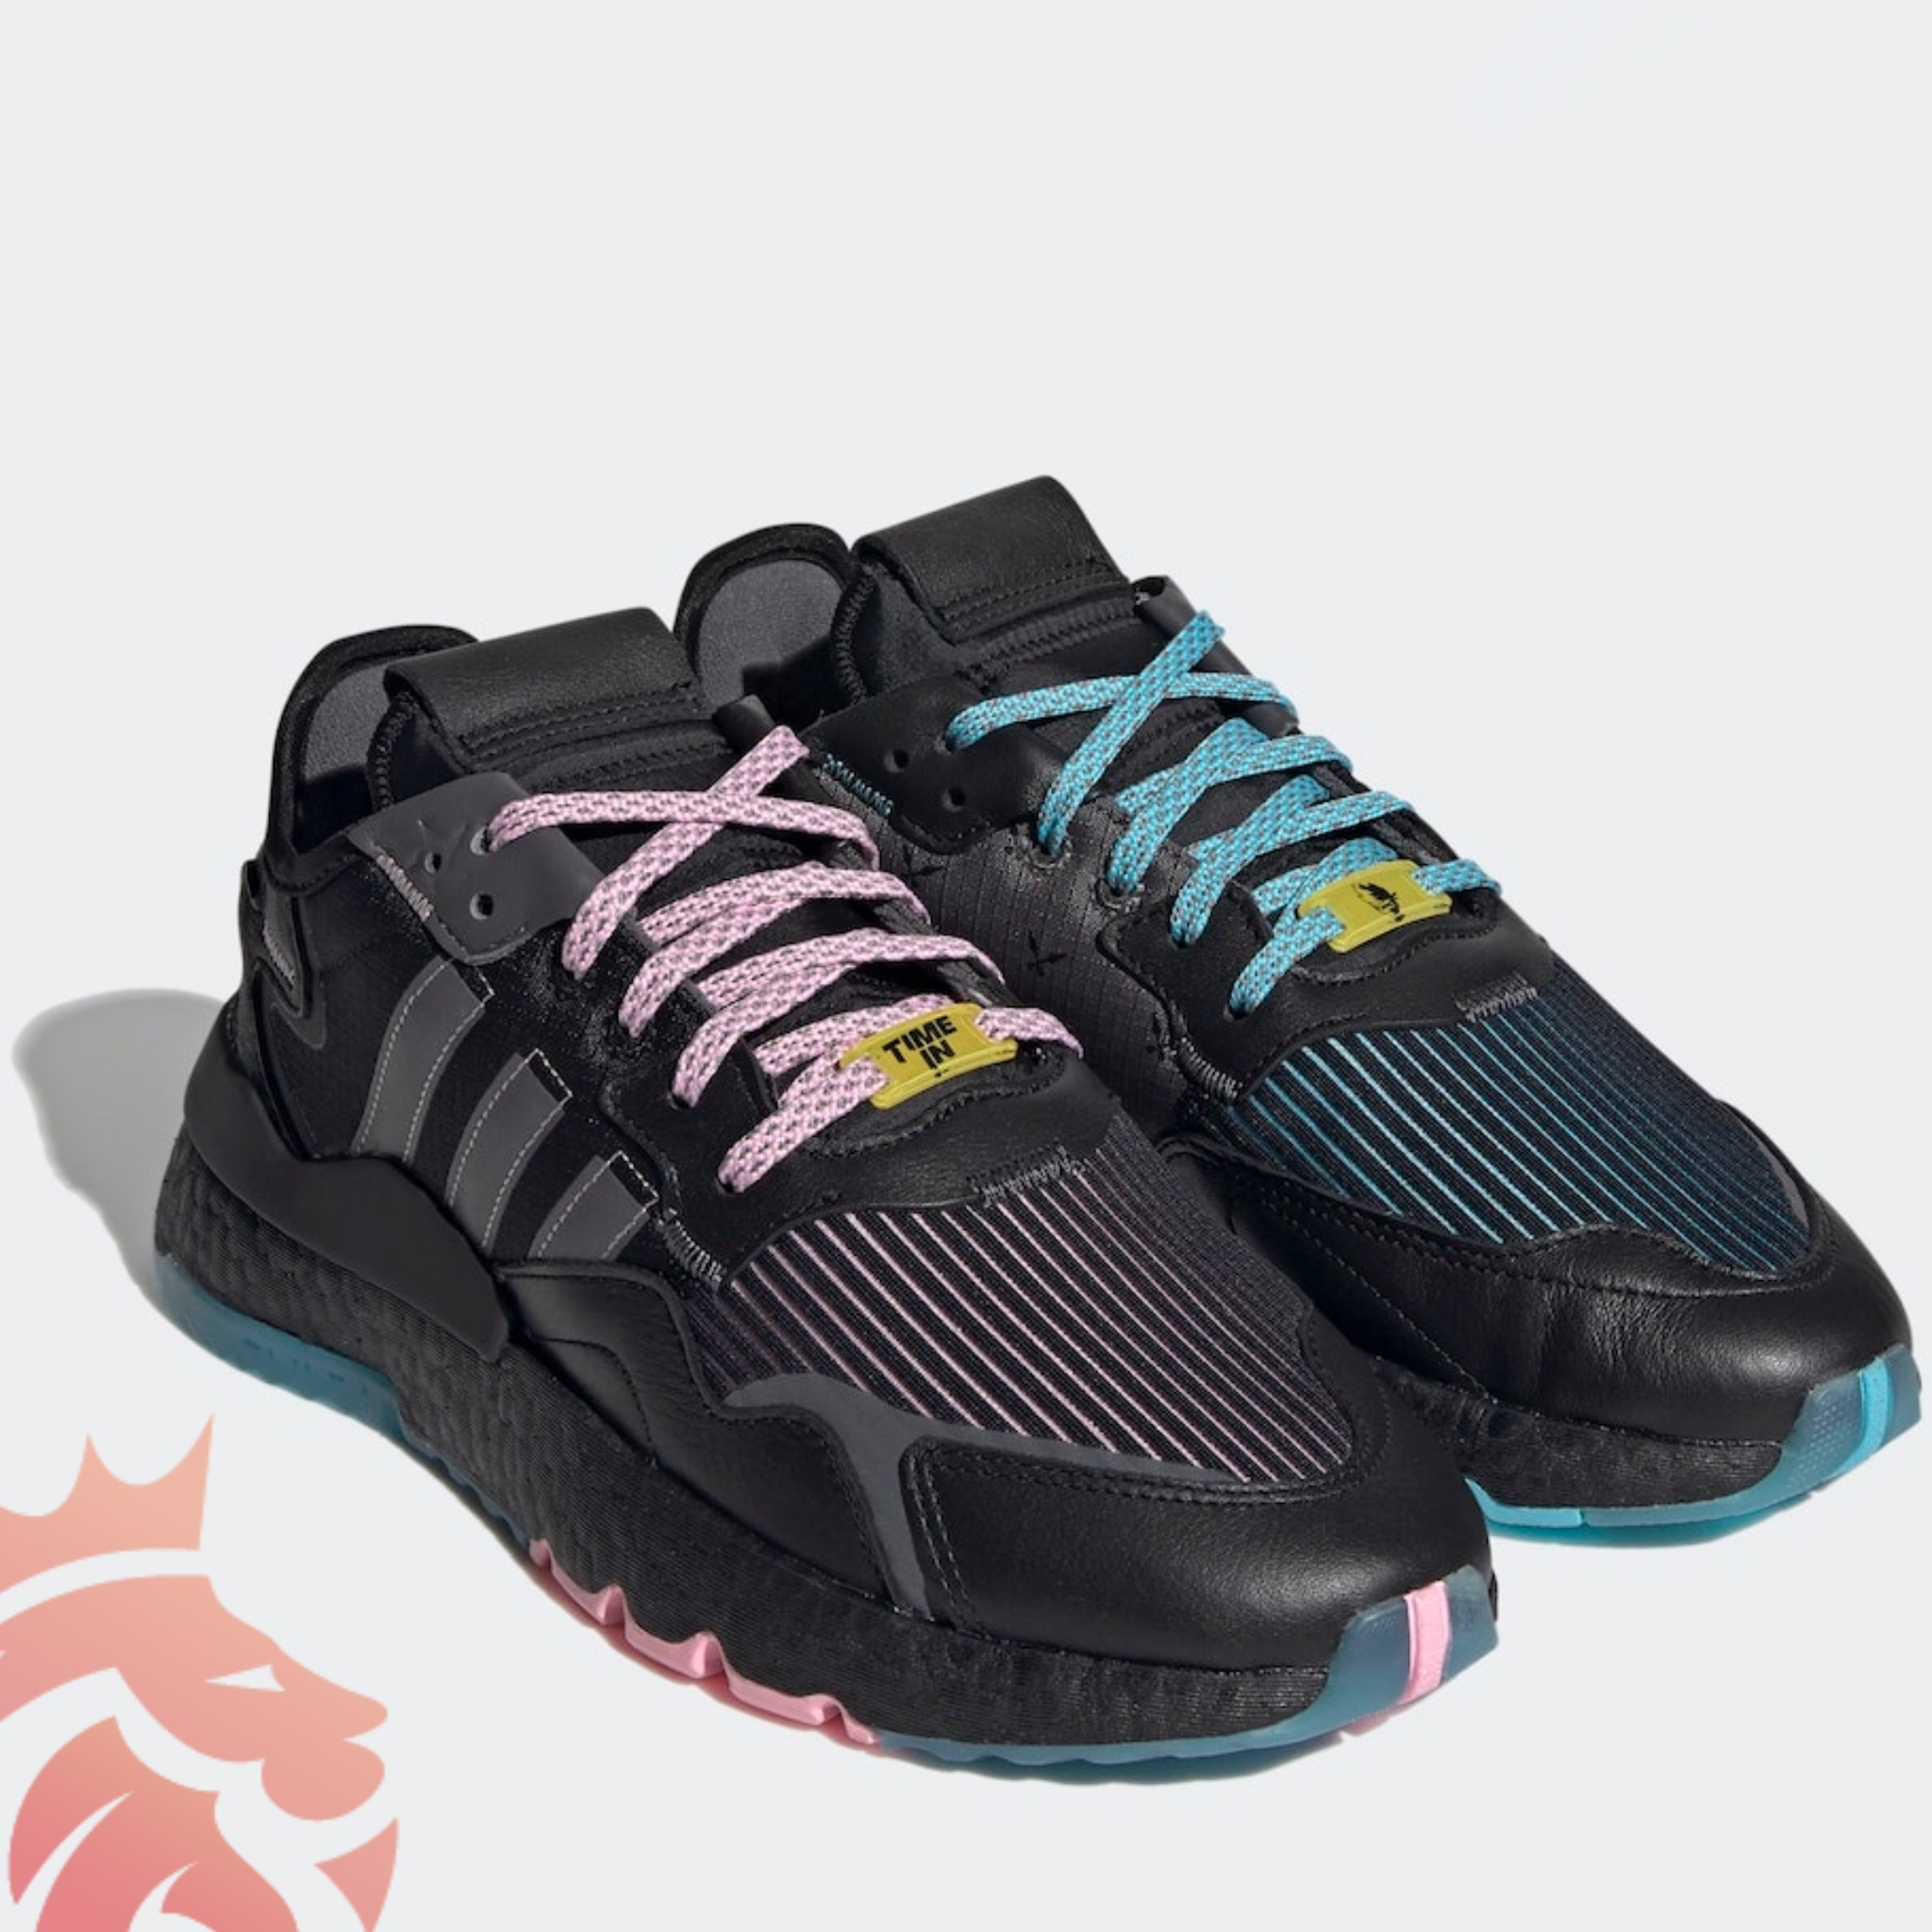 Ninja x adidas Nite Jogger Time In Q47198 Core Black/Grey-Blue Glow